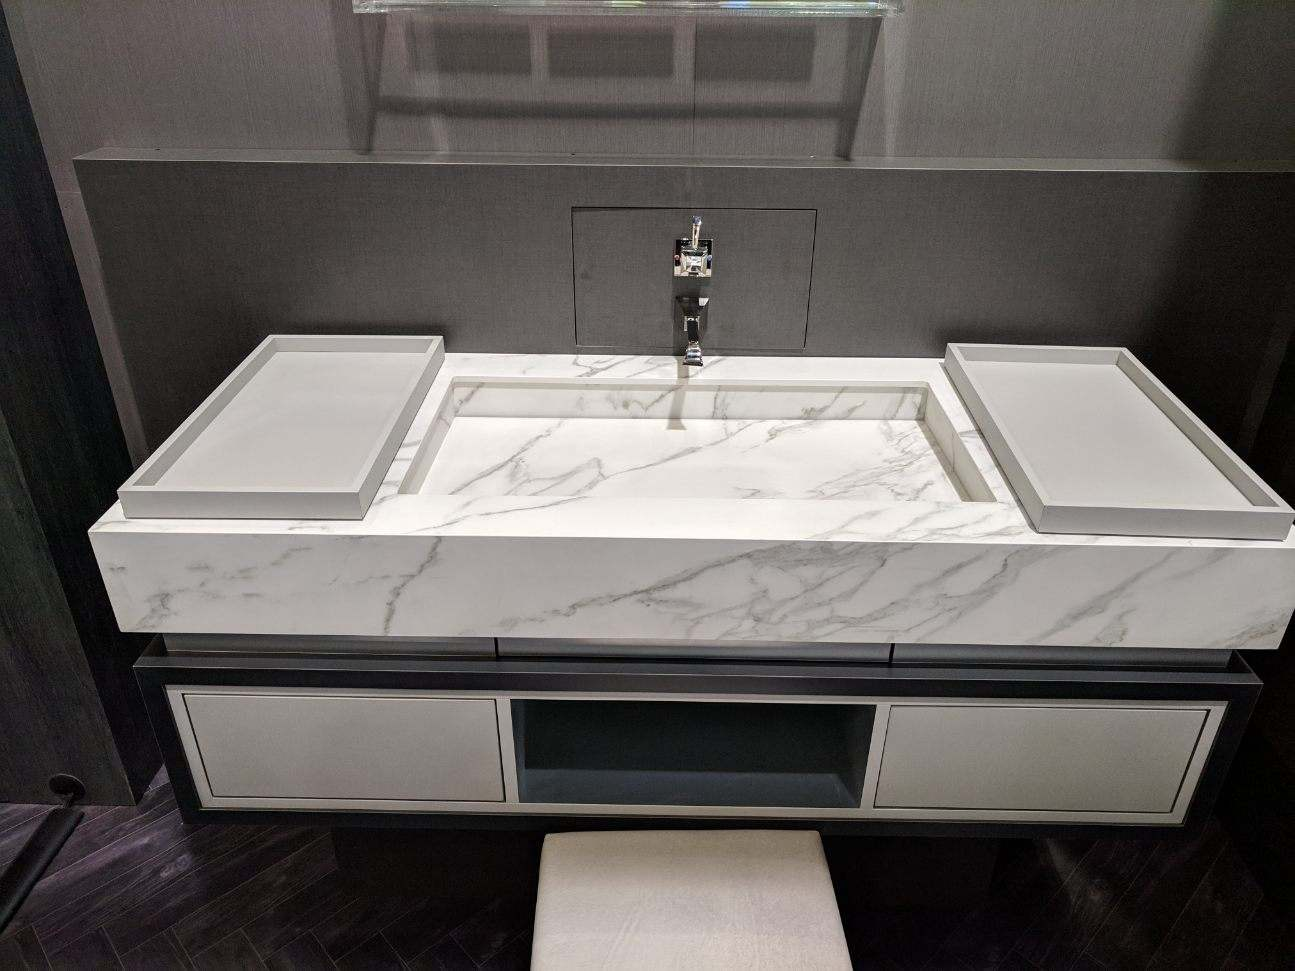 KBIS Booth: Neolith Calacatta